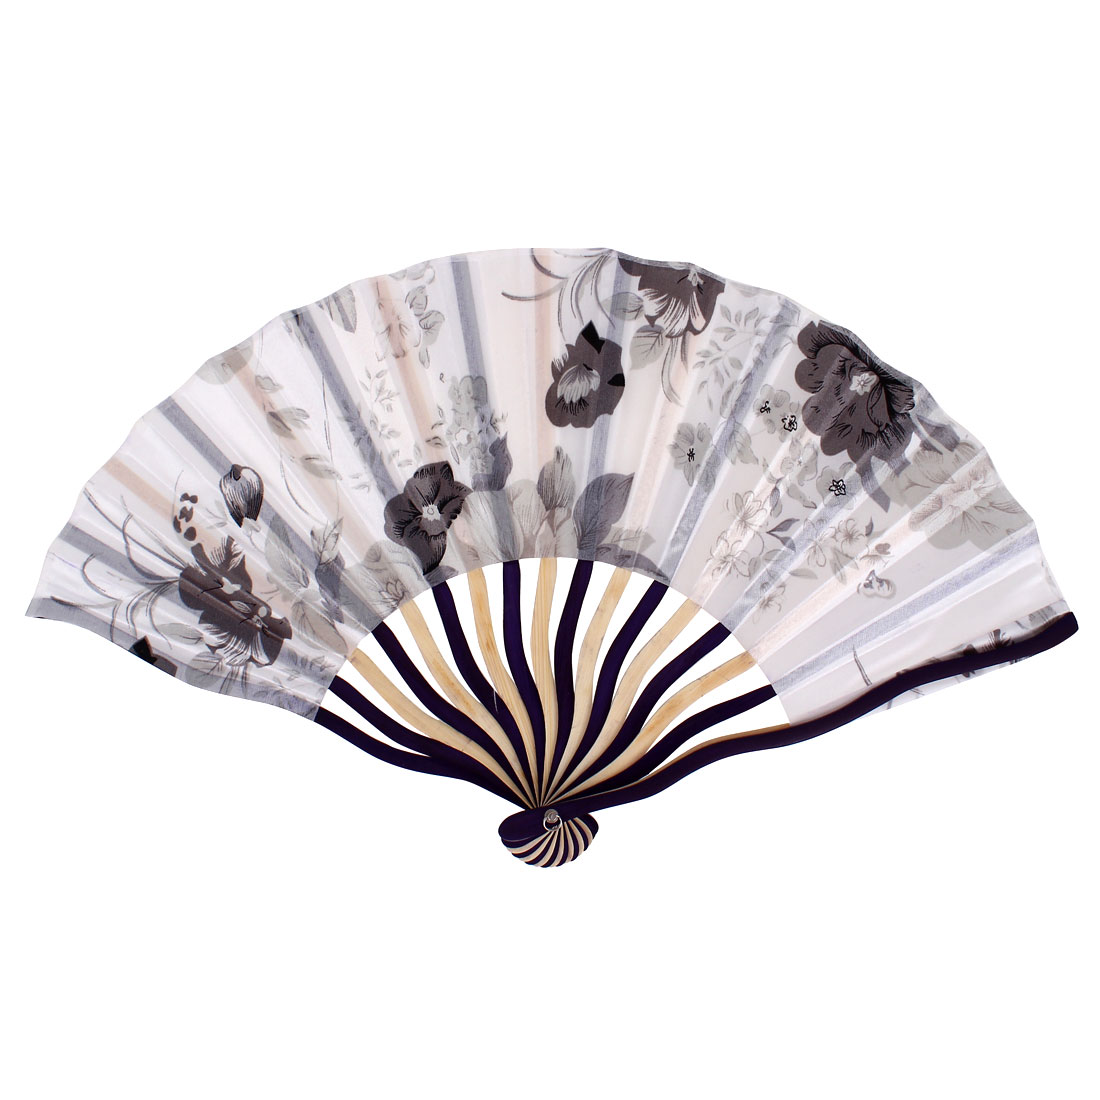 Chinese Blooming Peony Flower Print Ivory Purple Wood Frame Gray Fabric Cloth Handheld Collapsible Hand Fan